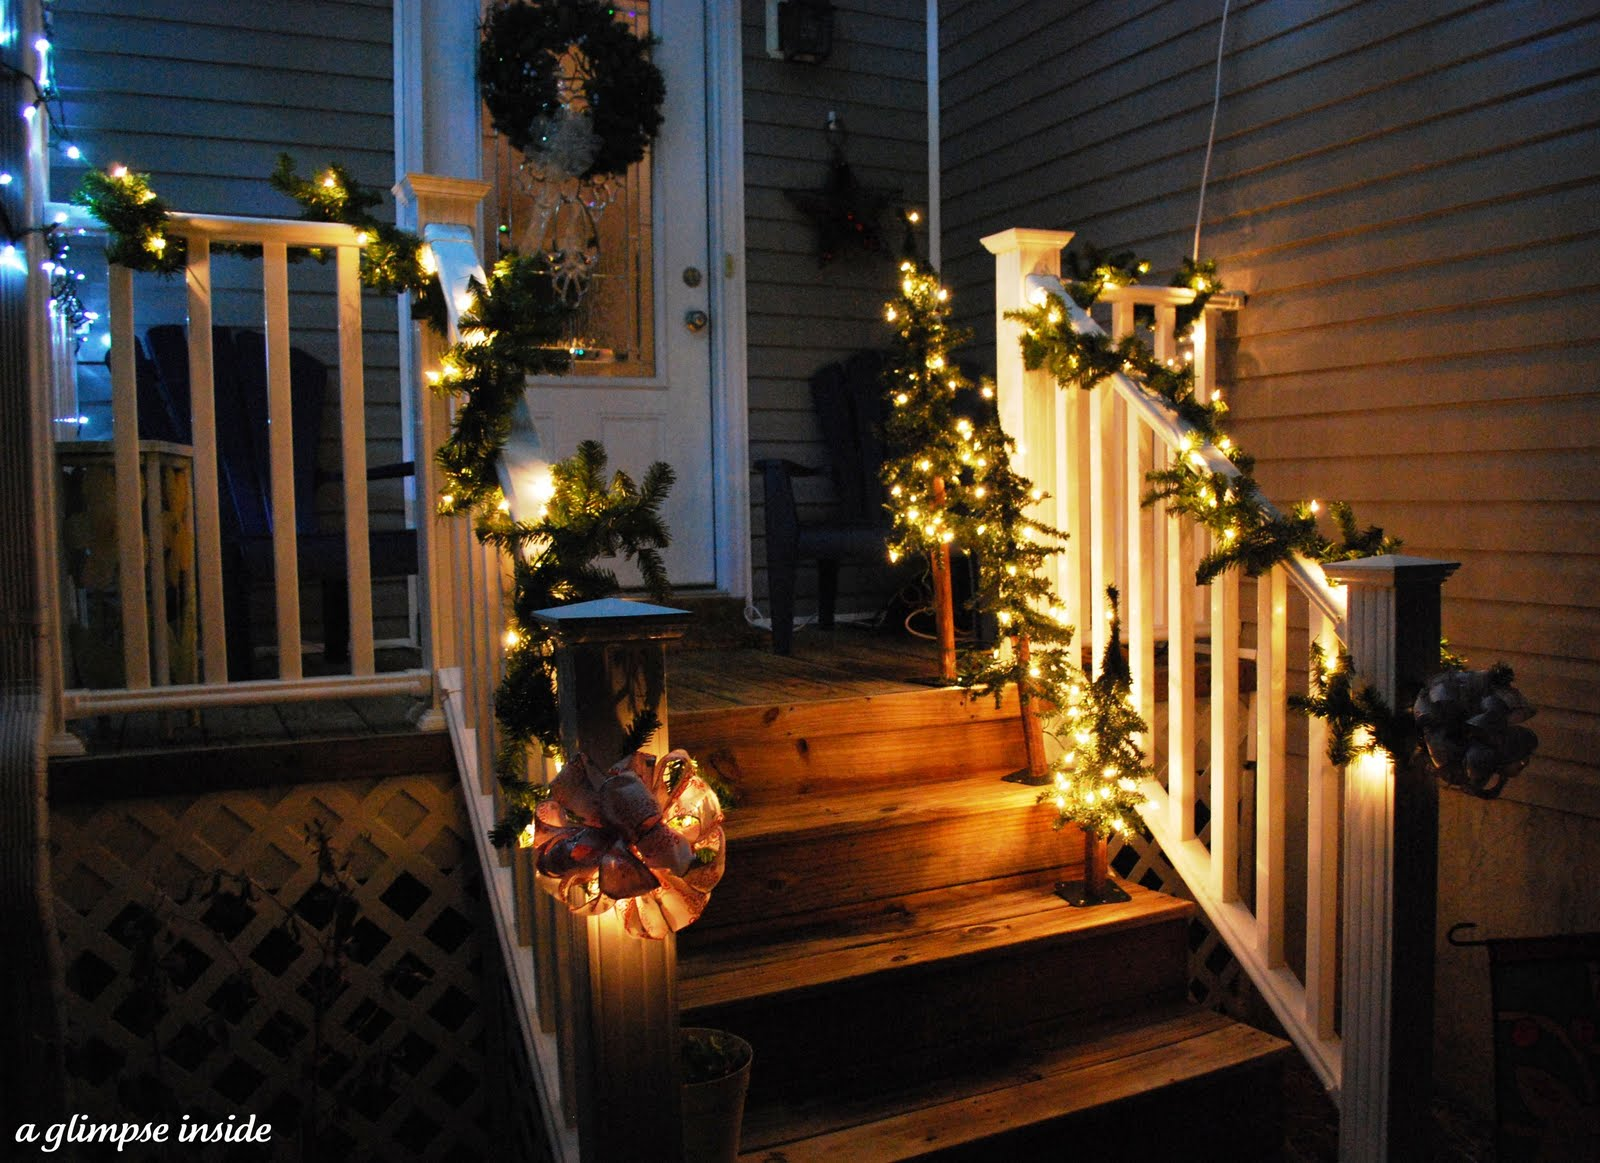 A Glimpse Inside Holiday Open House Outdoor Decor